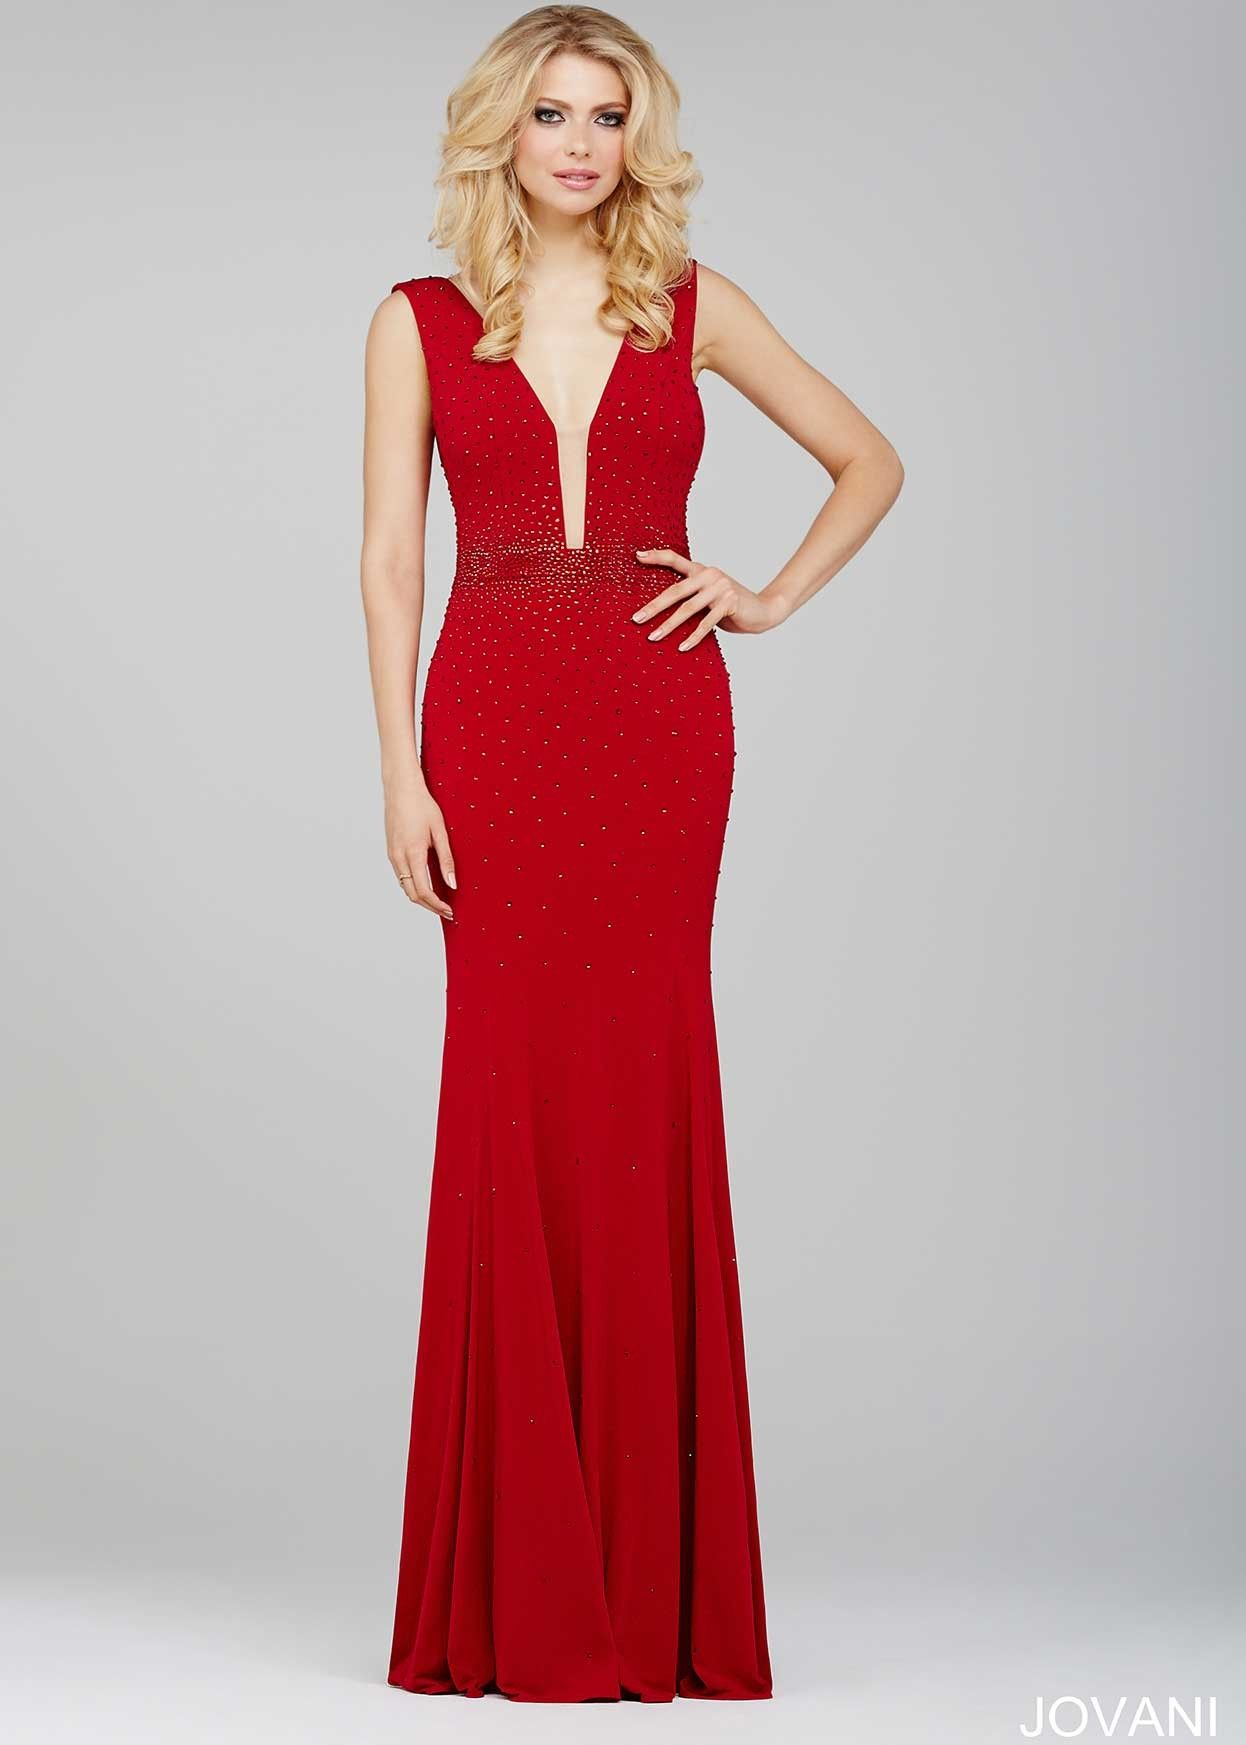 Jovani 32024 Red Ravishing Fit Flare Jersey Prom Dress 2016 Prom